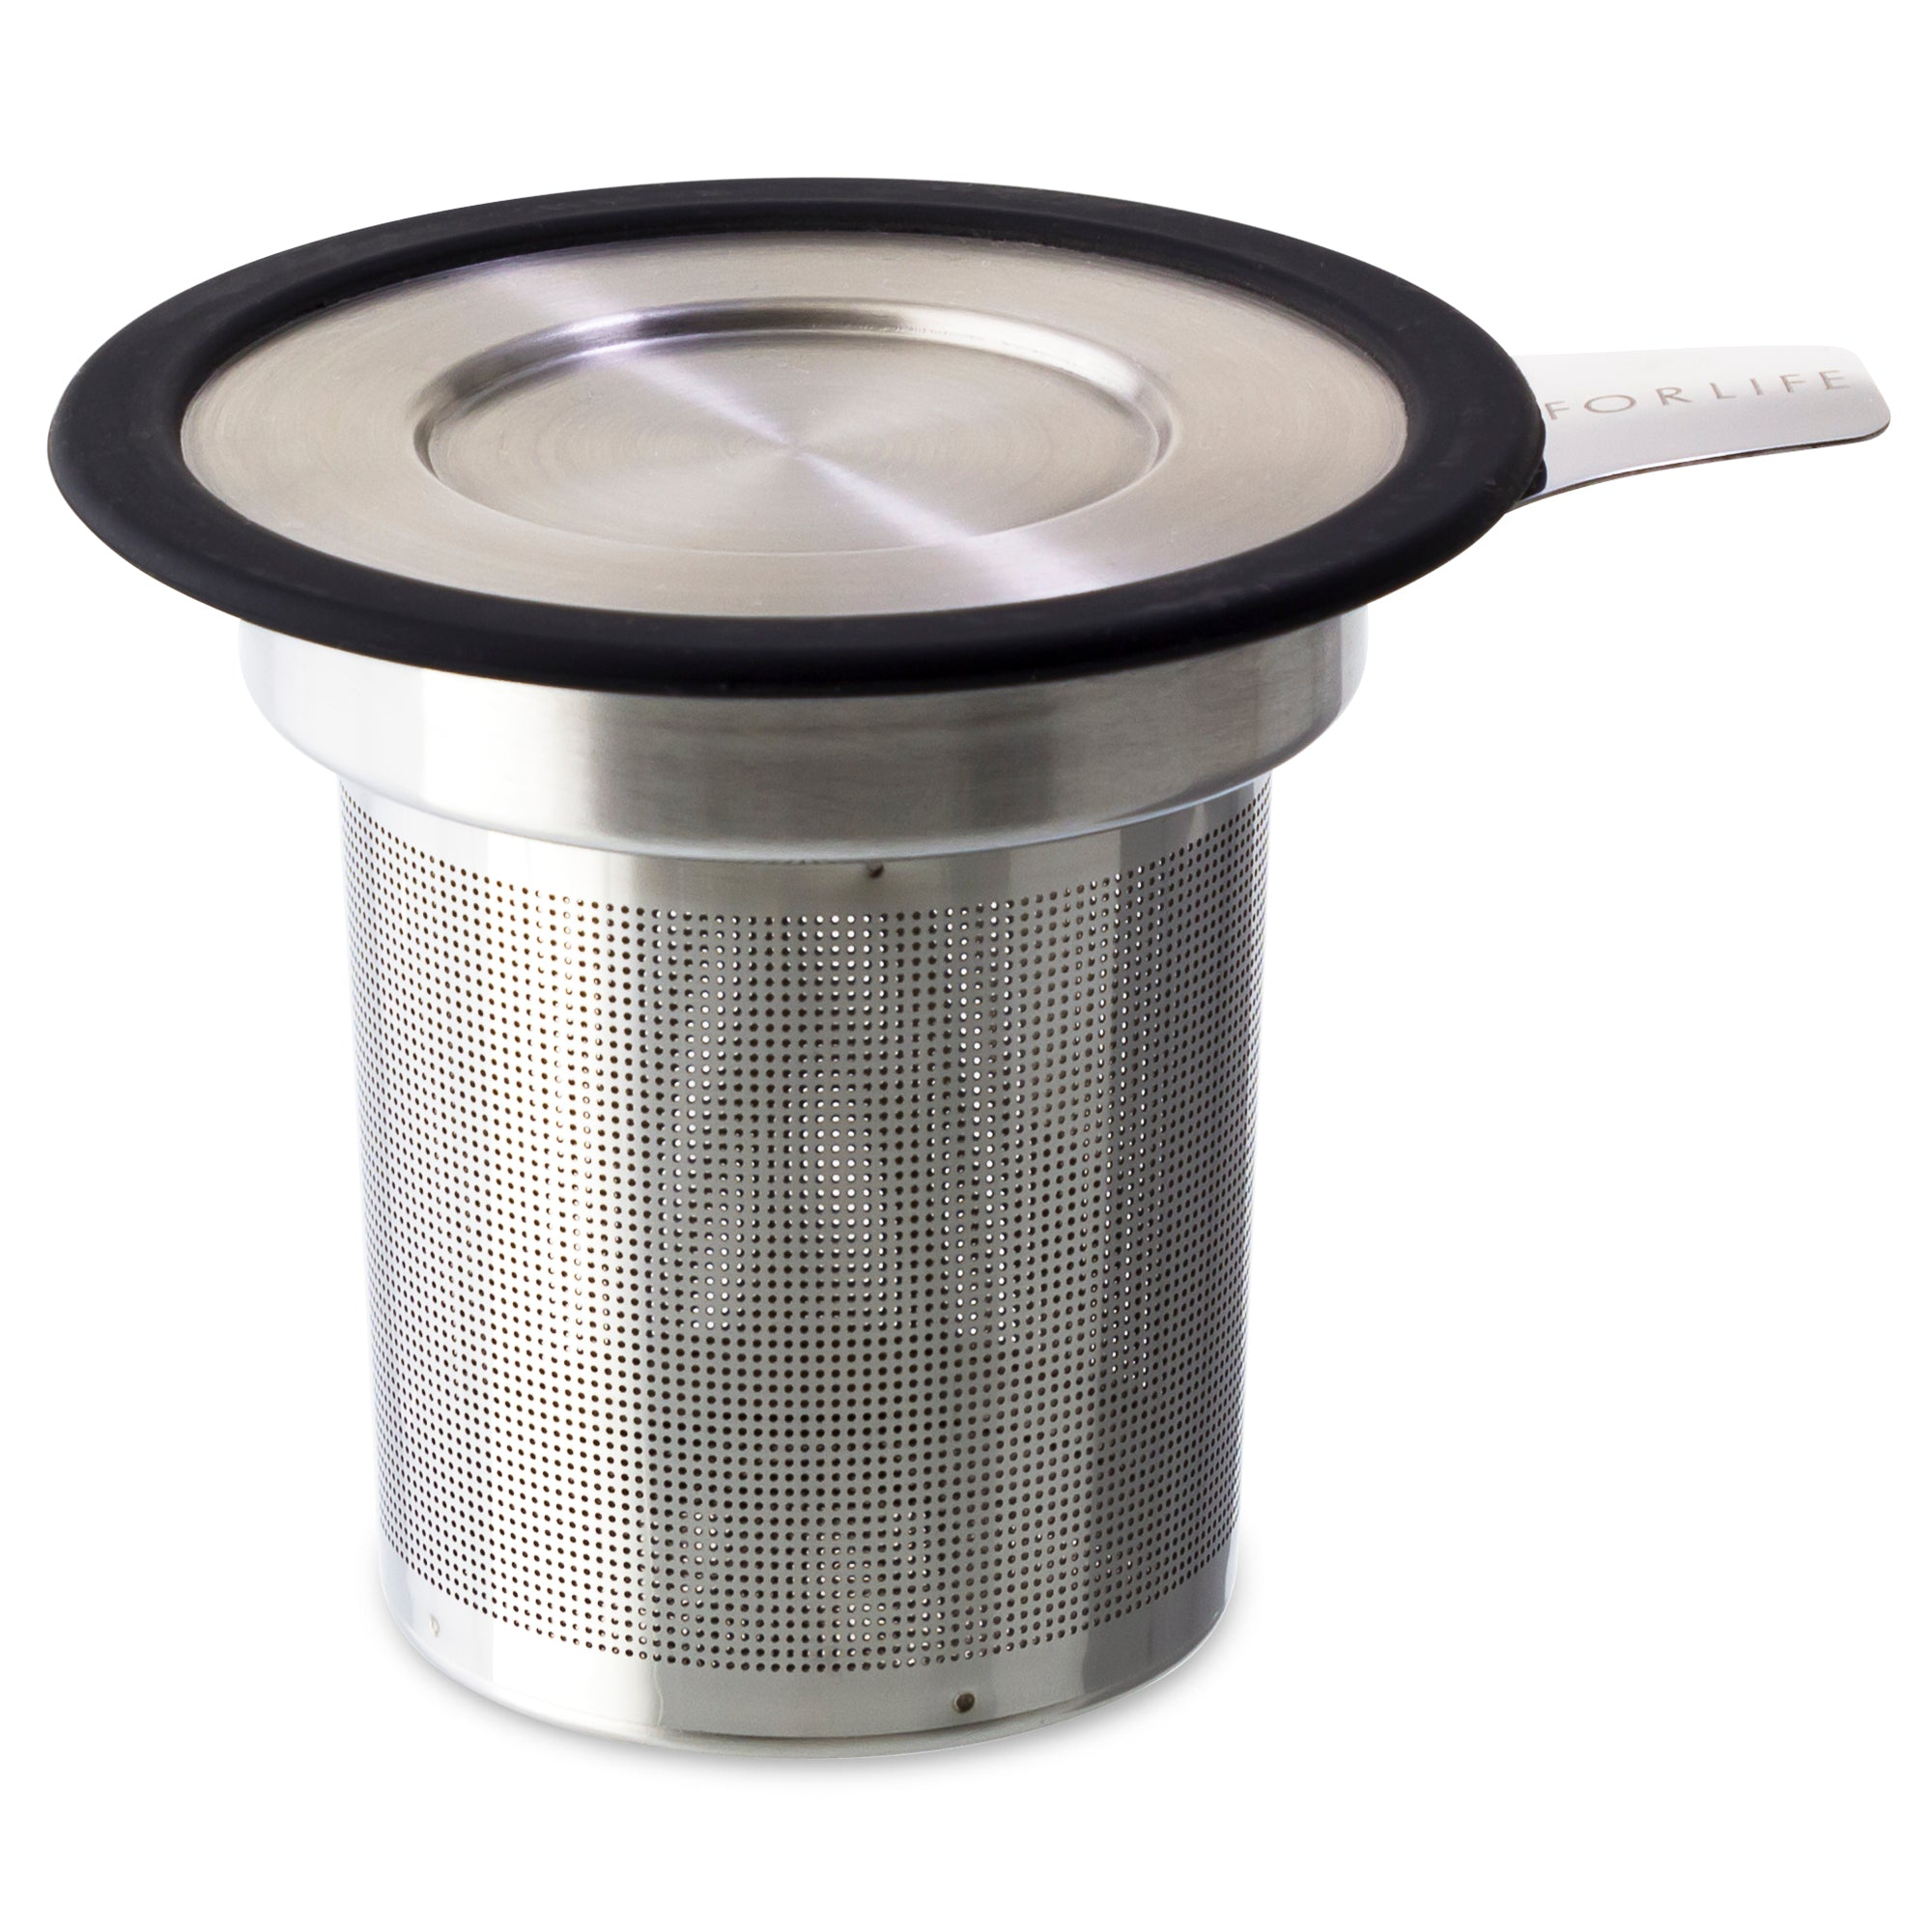 Brew-in-Mug Extra-fine Tea Infuser<br>with Lid